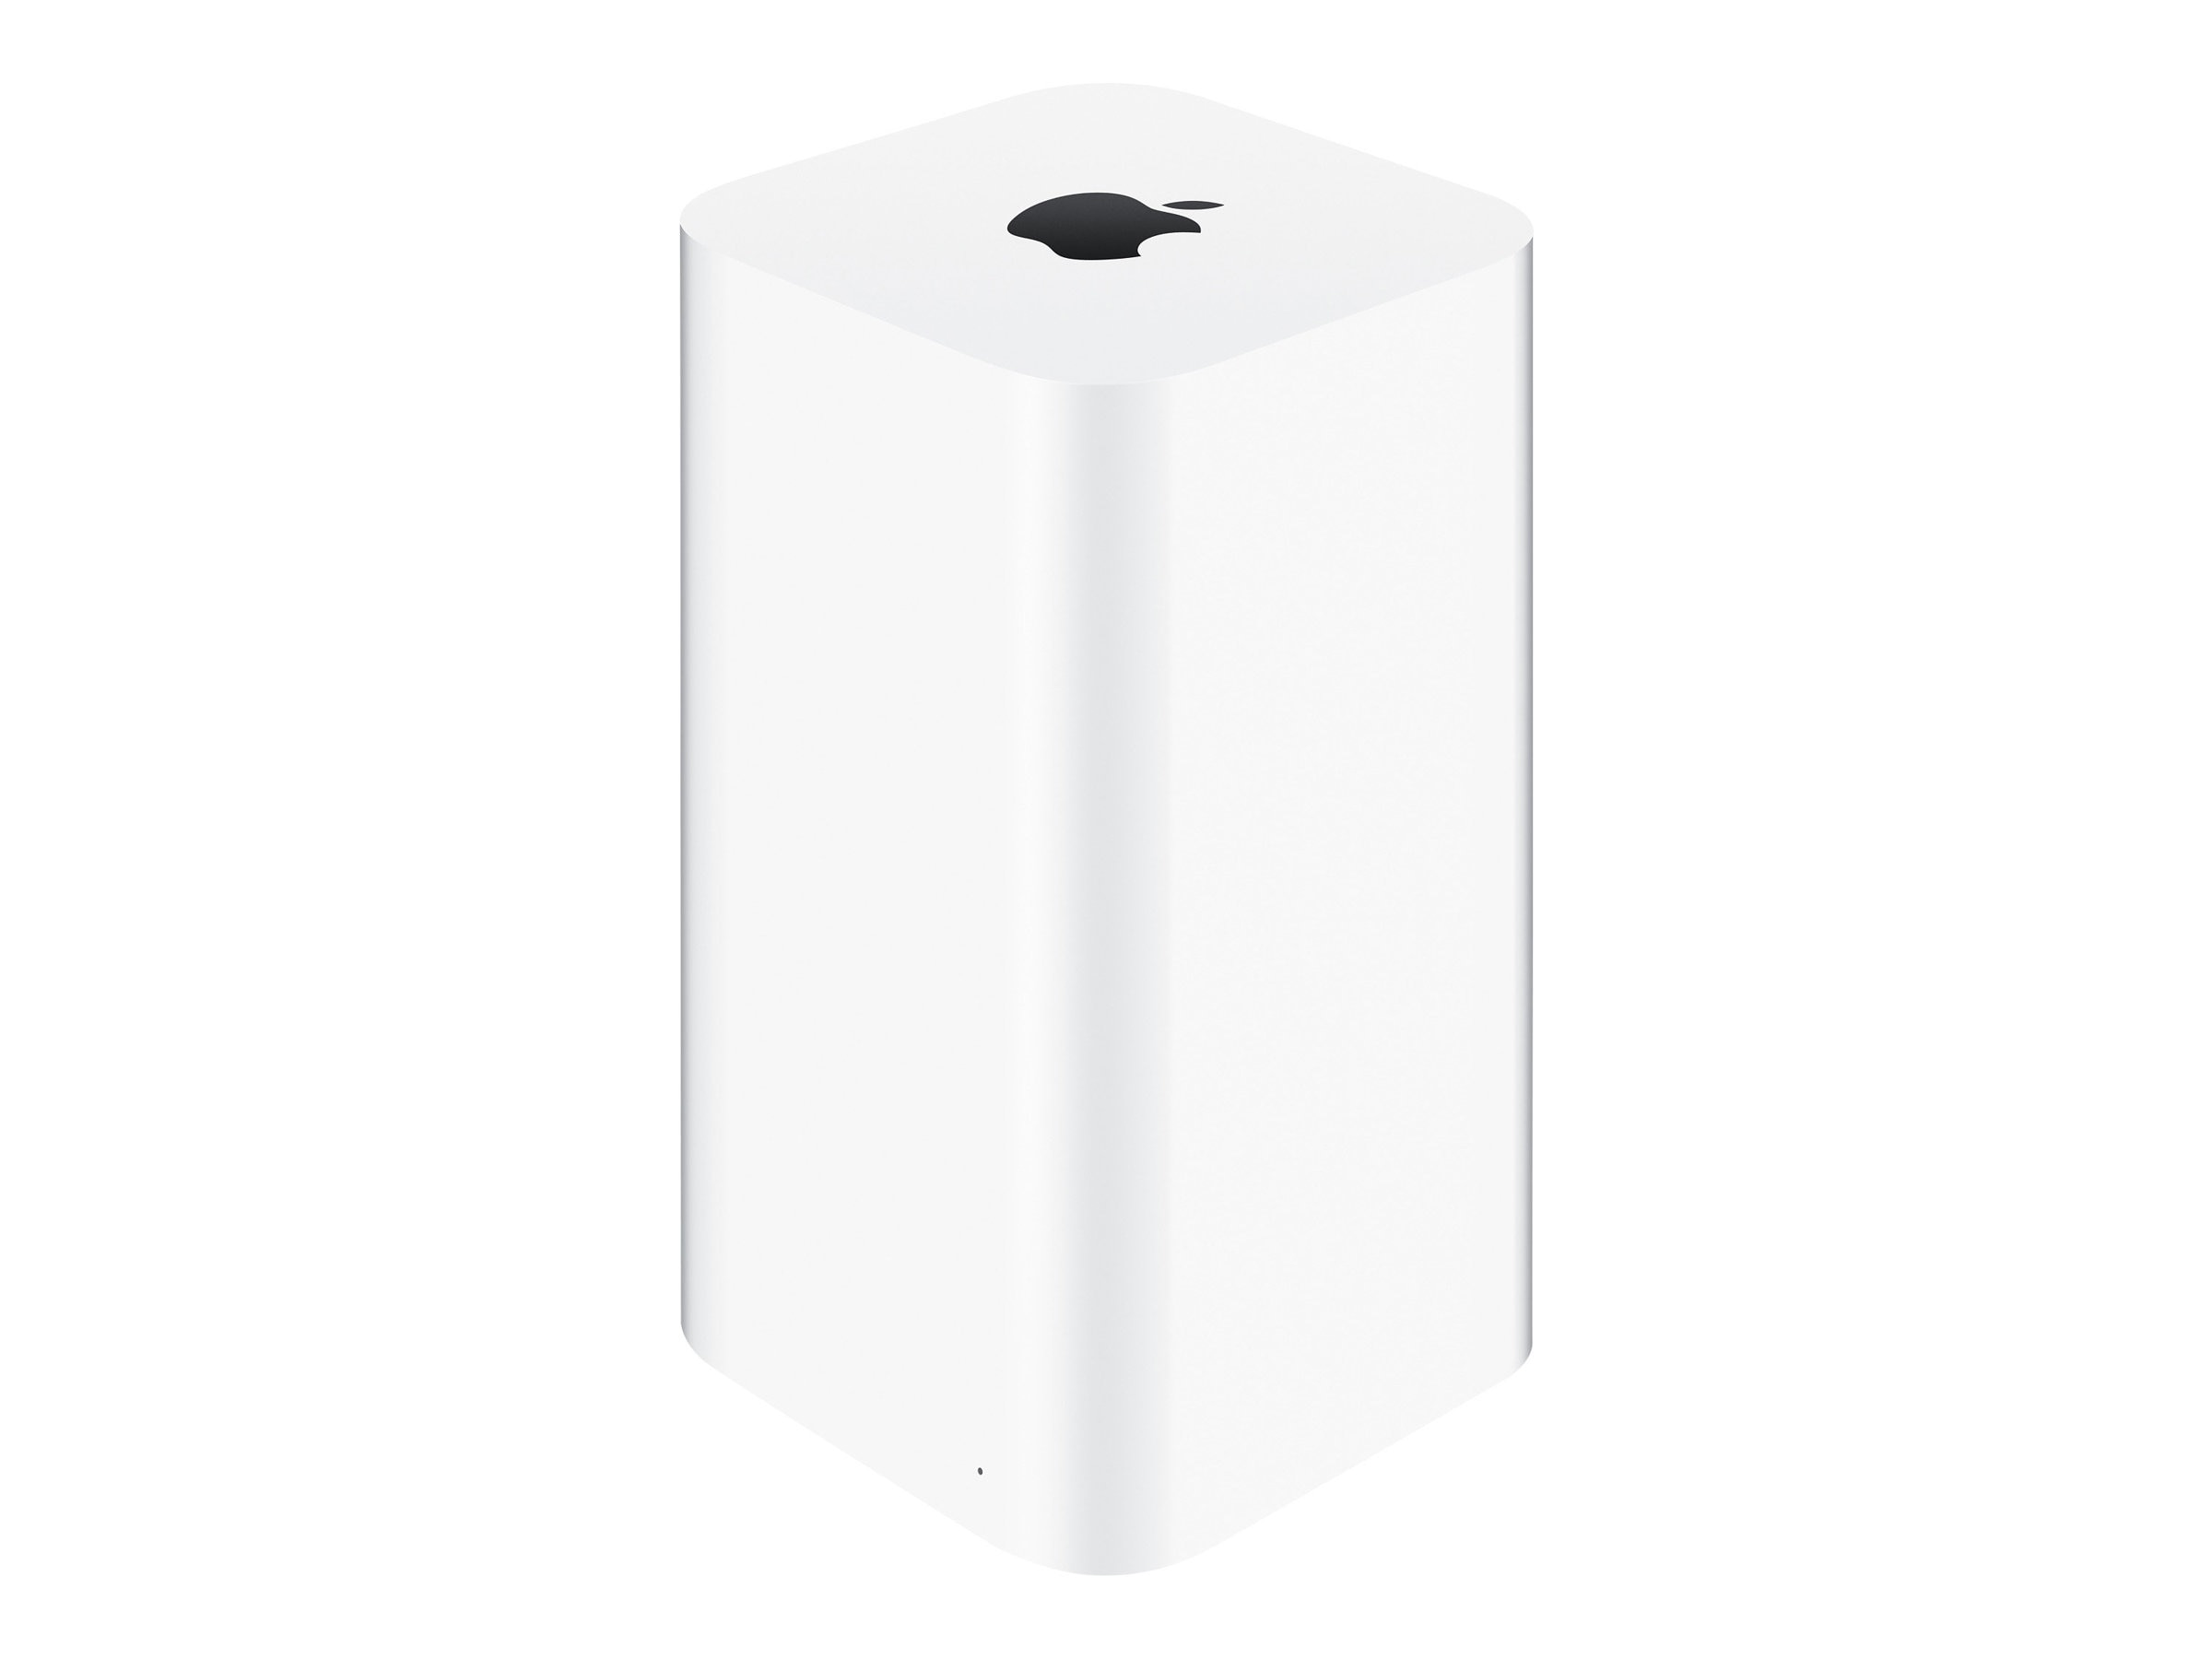 Apple AirPort Time Capsule - 3TB (802.11ac, 2013), ME182LL/A